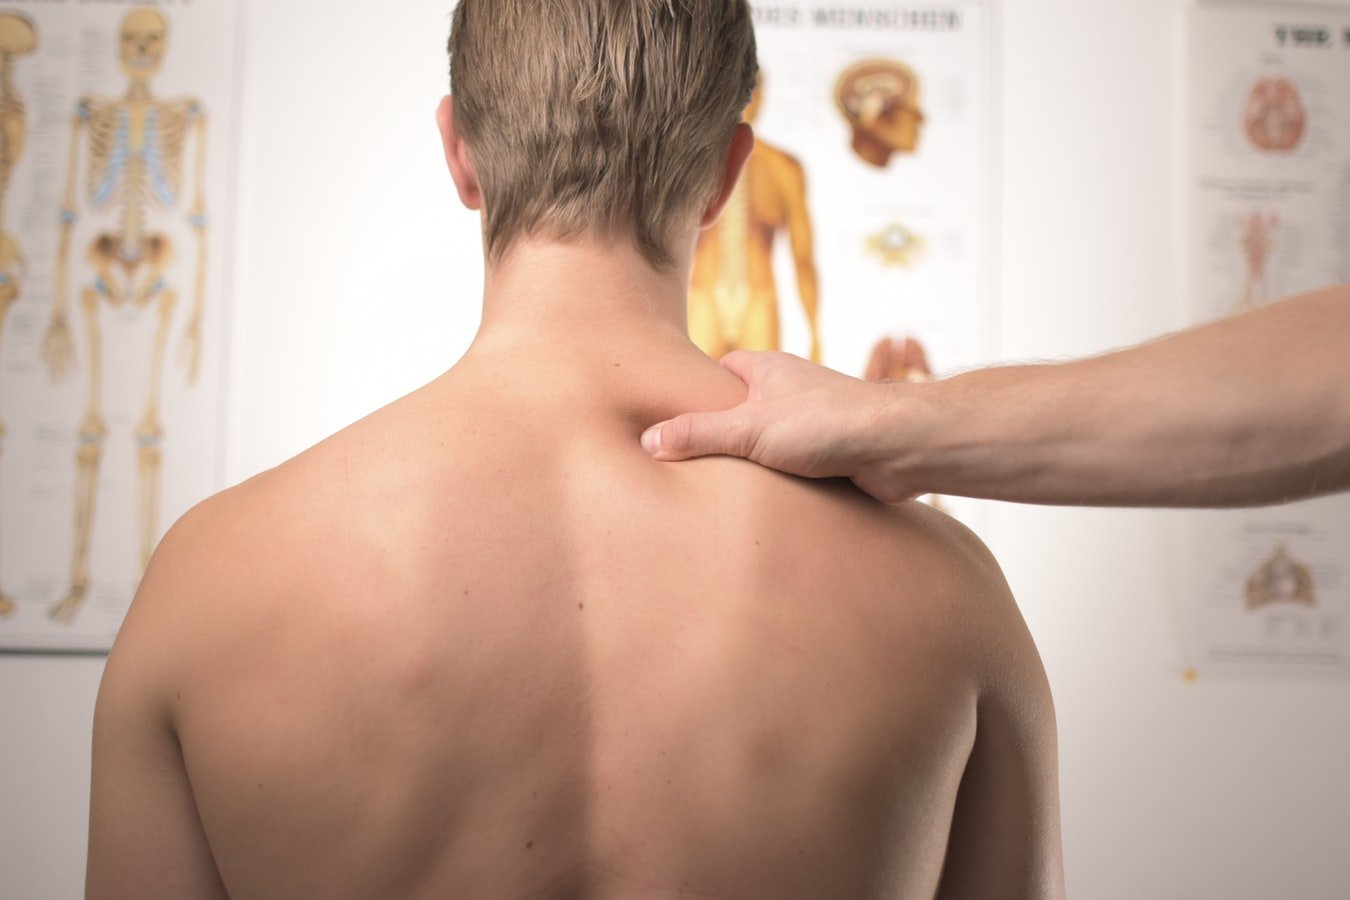 A man sees a doctor for back or neck pain